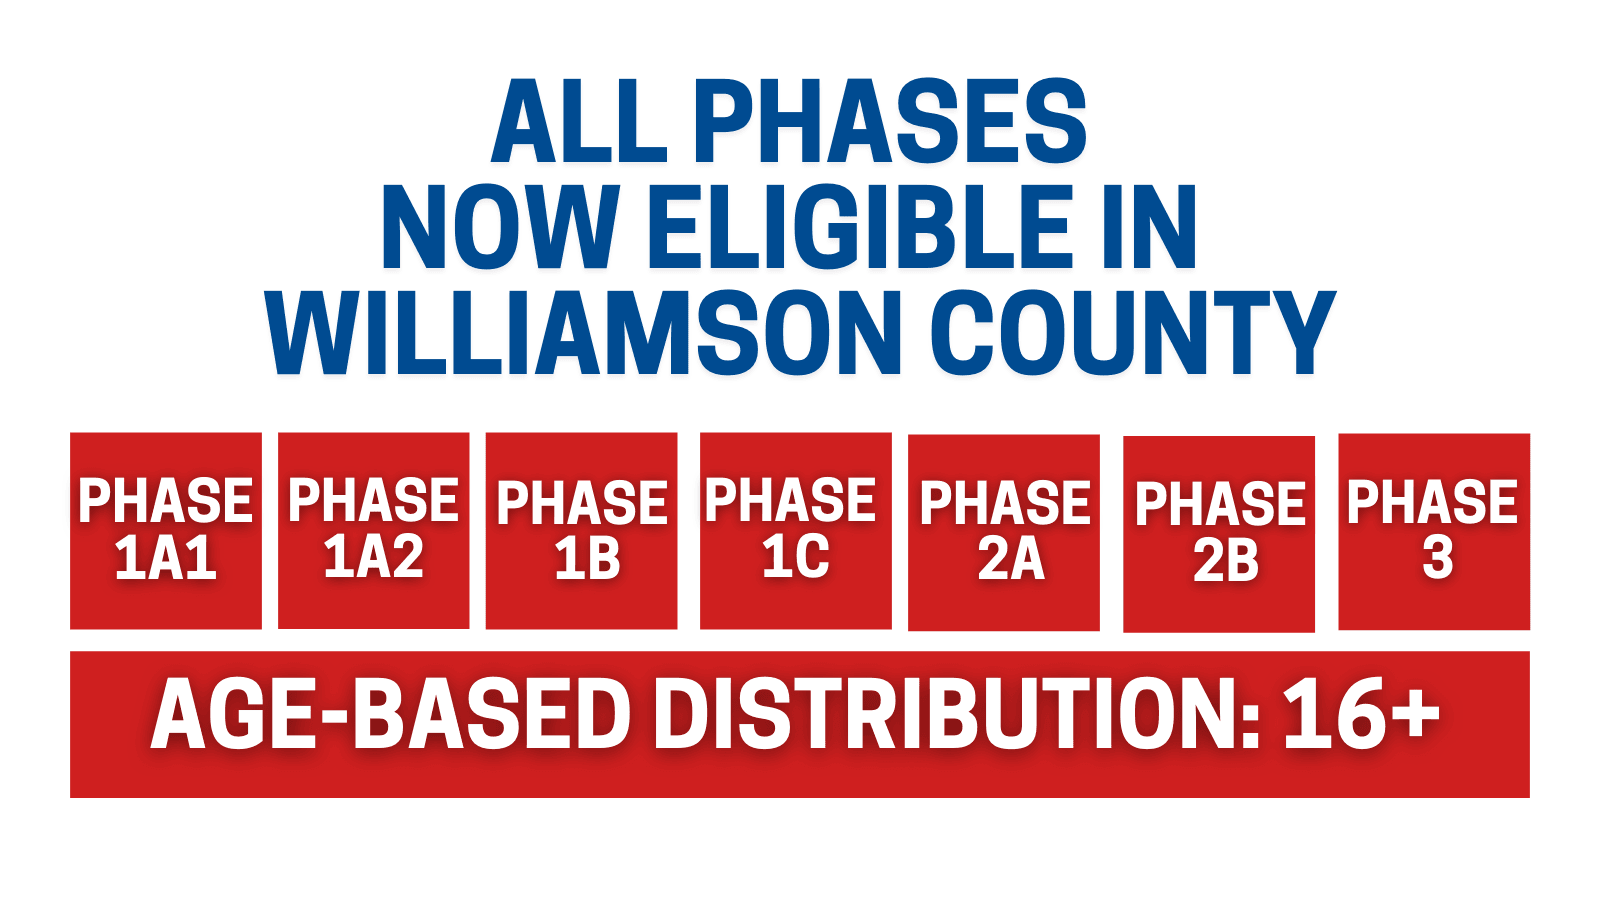 All Phases Now Eligible